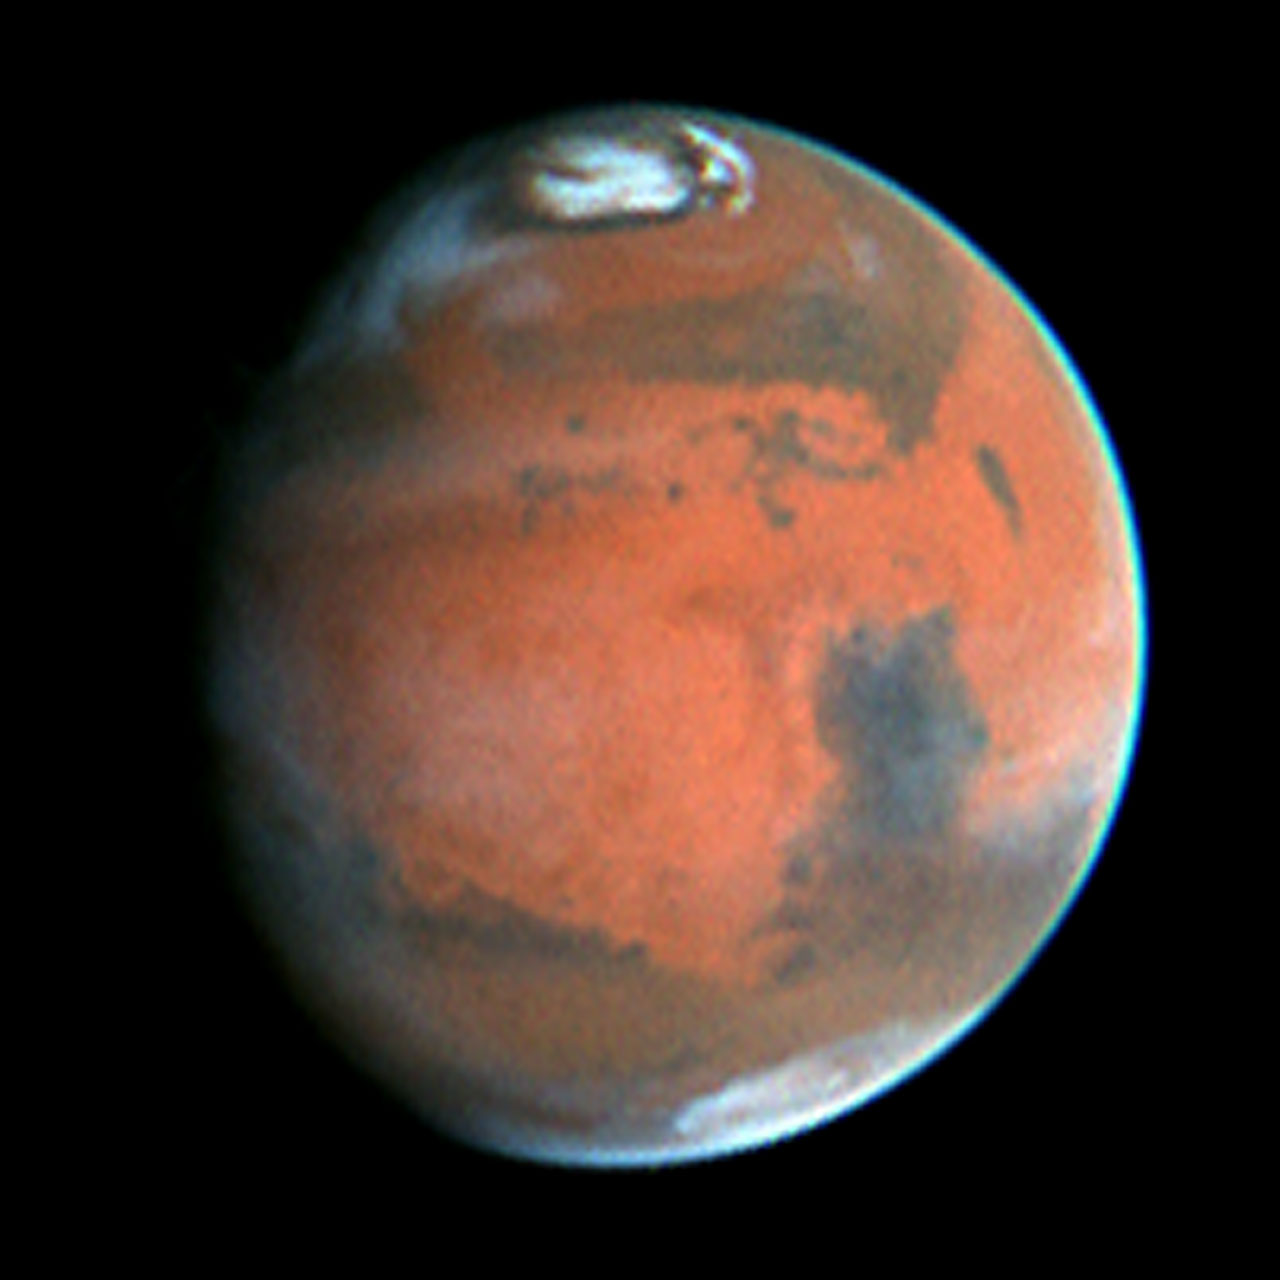 hubble images of mars - photo #24